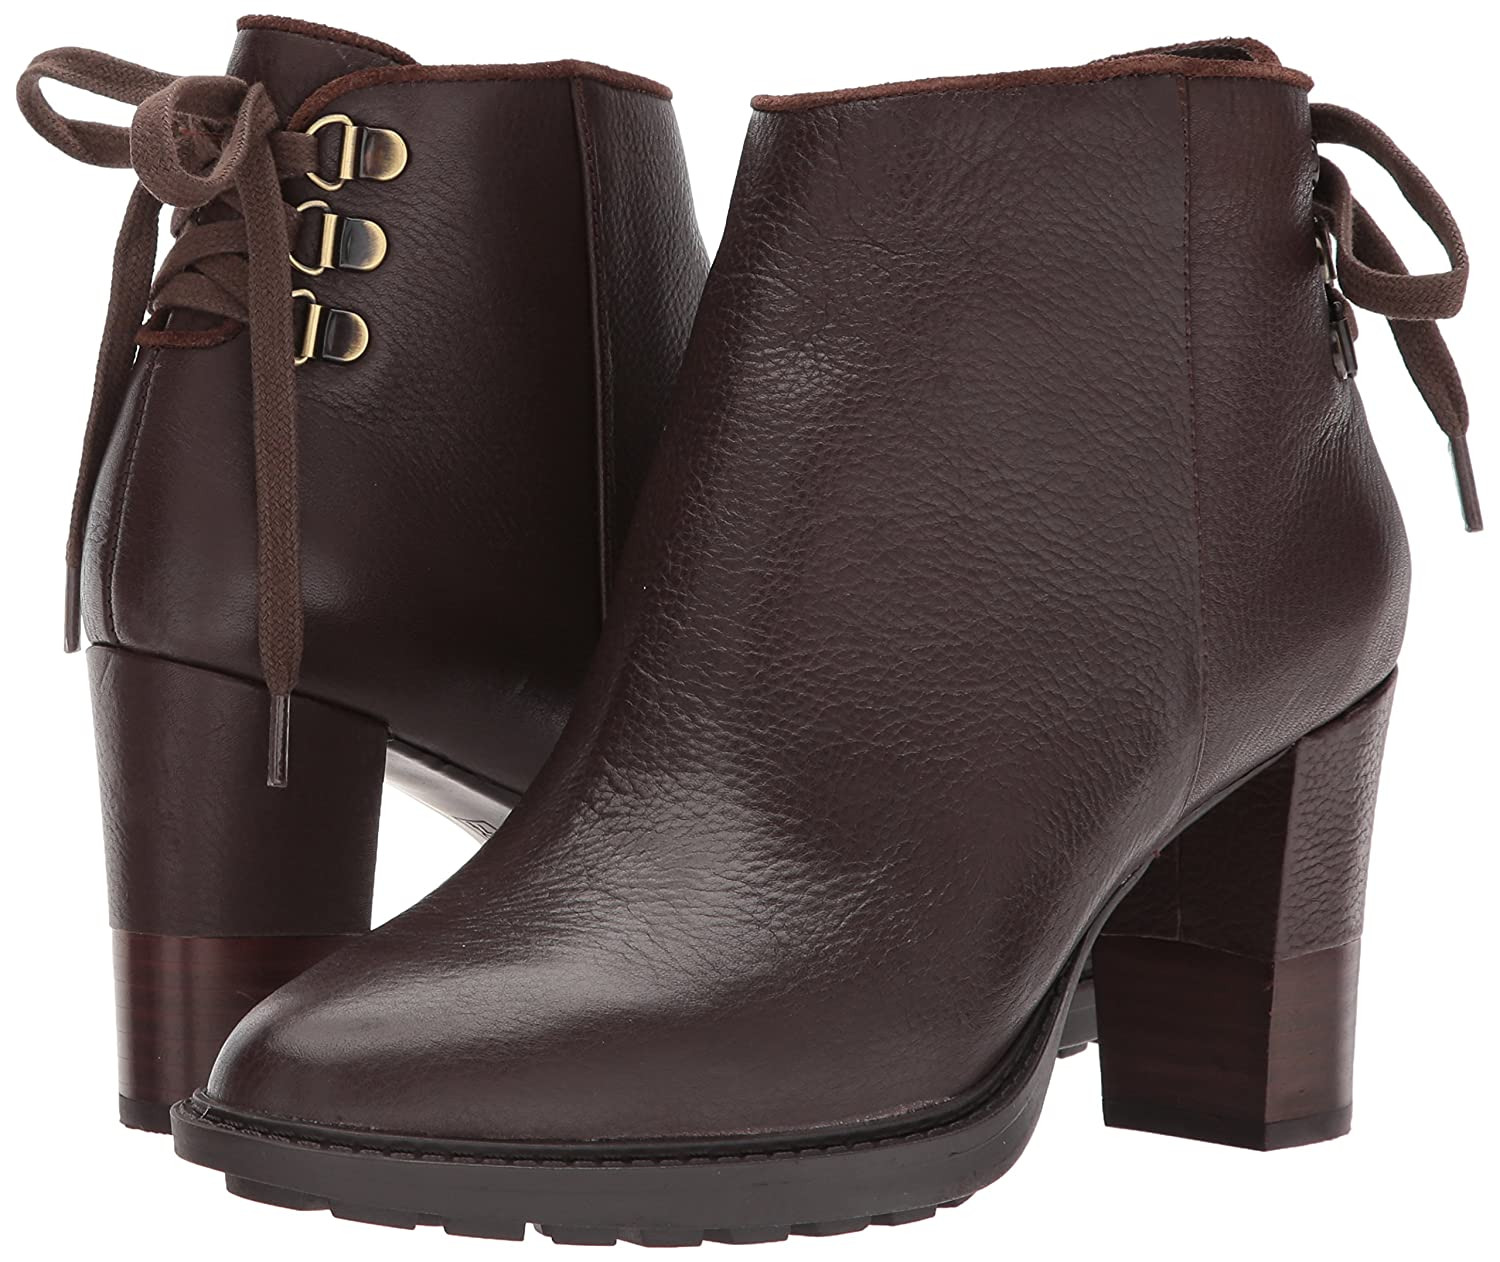 Aerosoles Women's Fact Fiction Ankle Boot B06Y613QYC 8.5 B(M) US|Dark Brown Leather